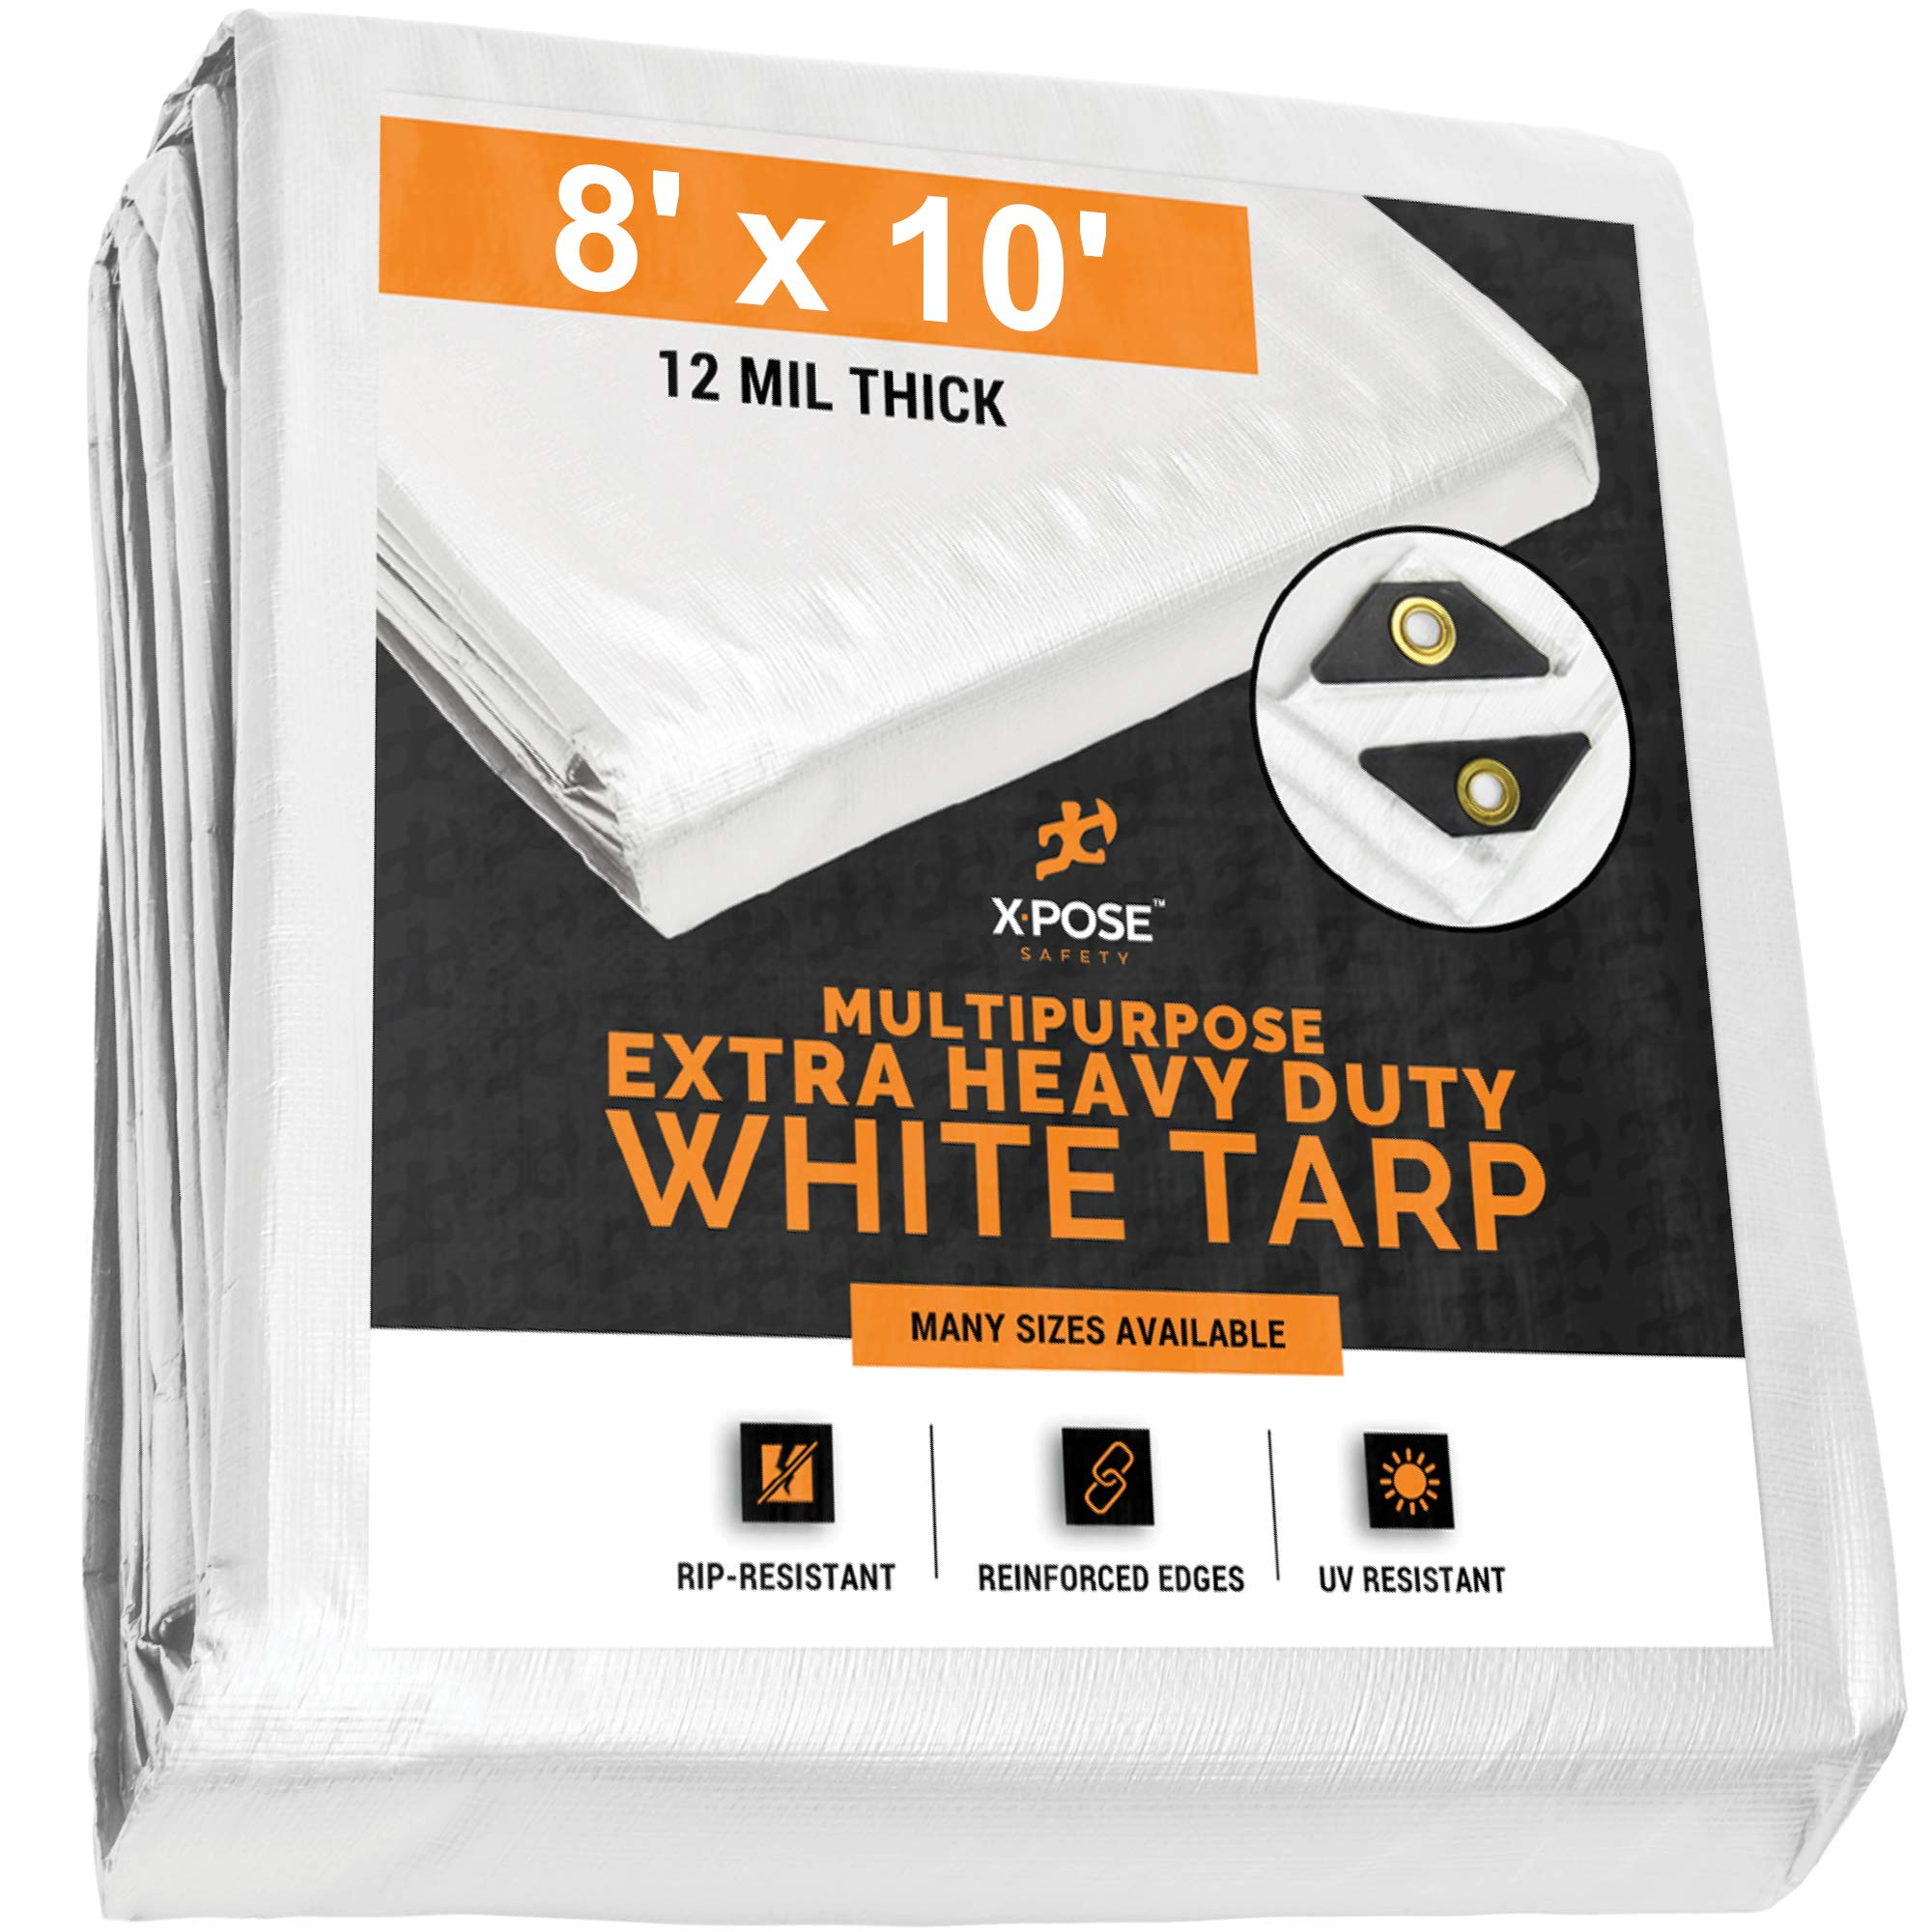 Heavy Duty White Poly Tarp 8' x 10' Multipurpose Protective Cover - Durable, Waterproof, Weather Proof, Rip and Tear Resistant - Extra Thick 12 Mil Polyethylene - by Xpose Safety by Xpose Safety